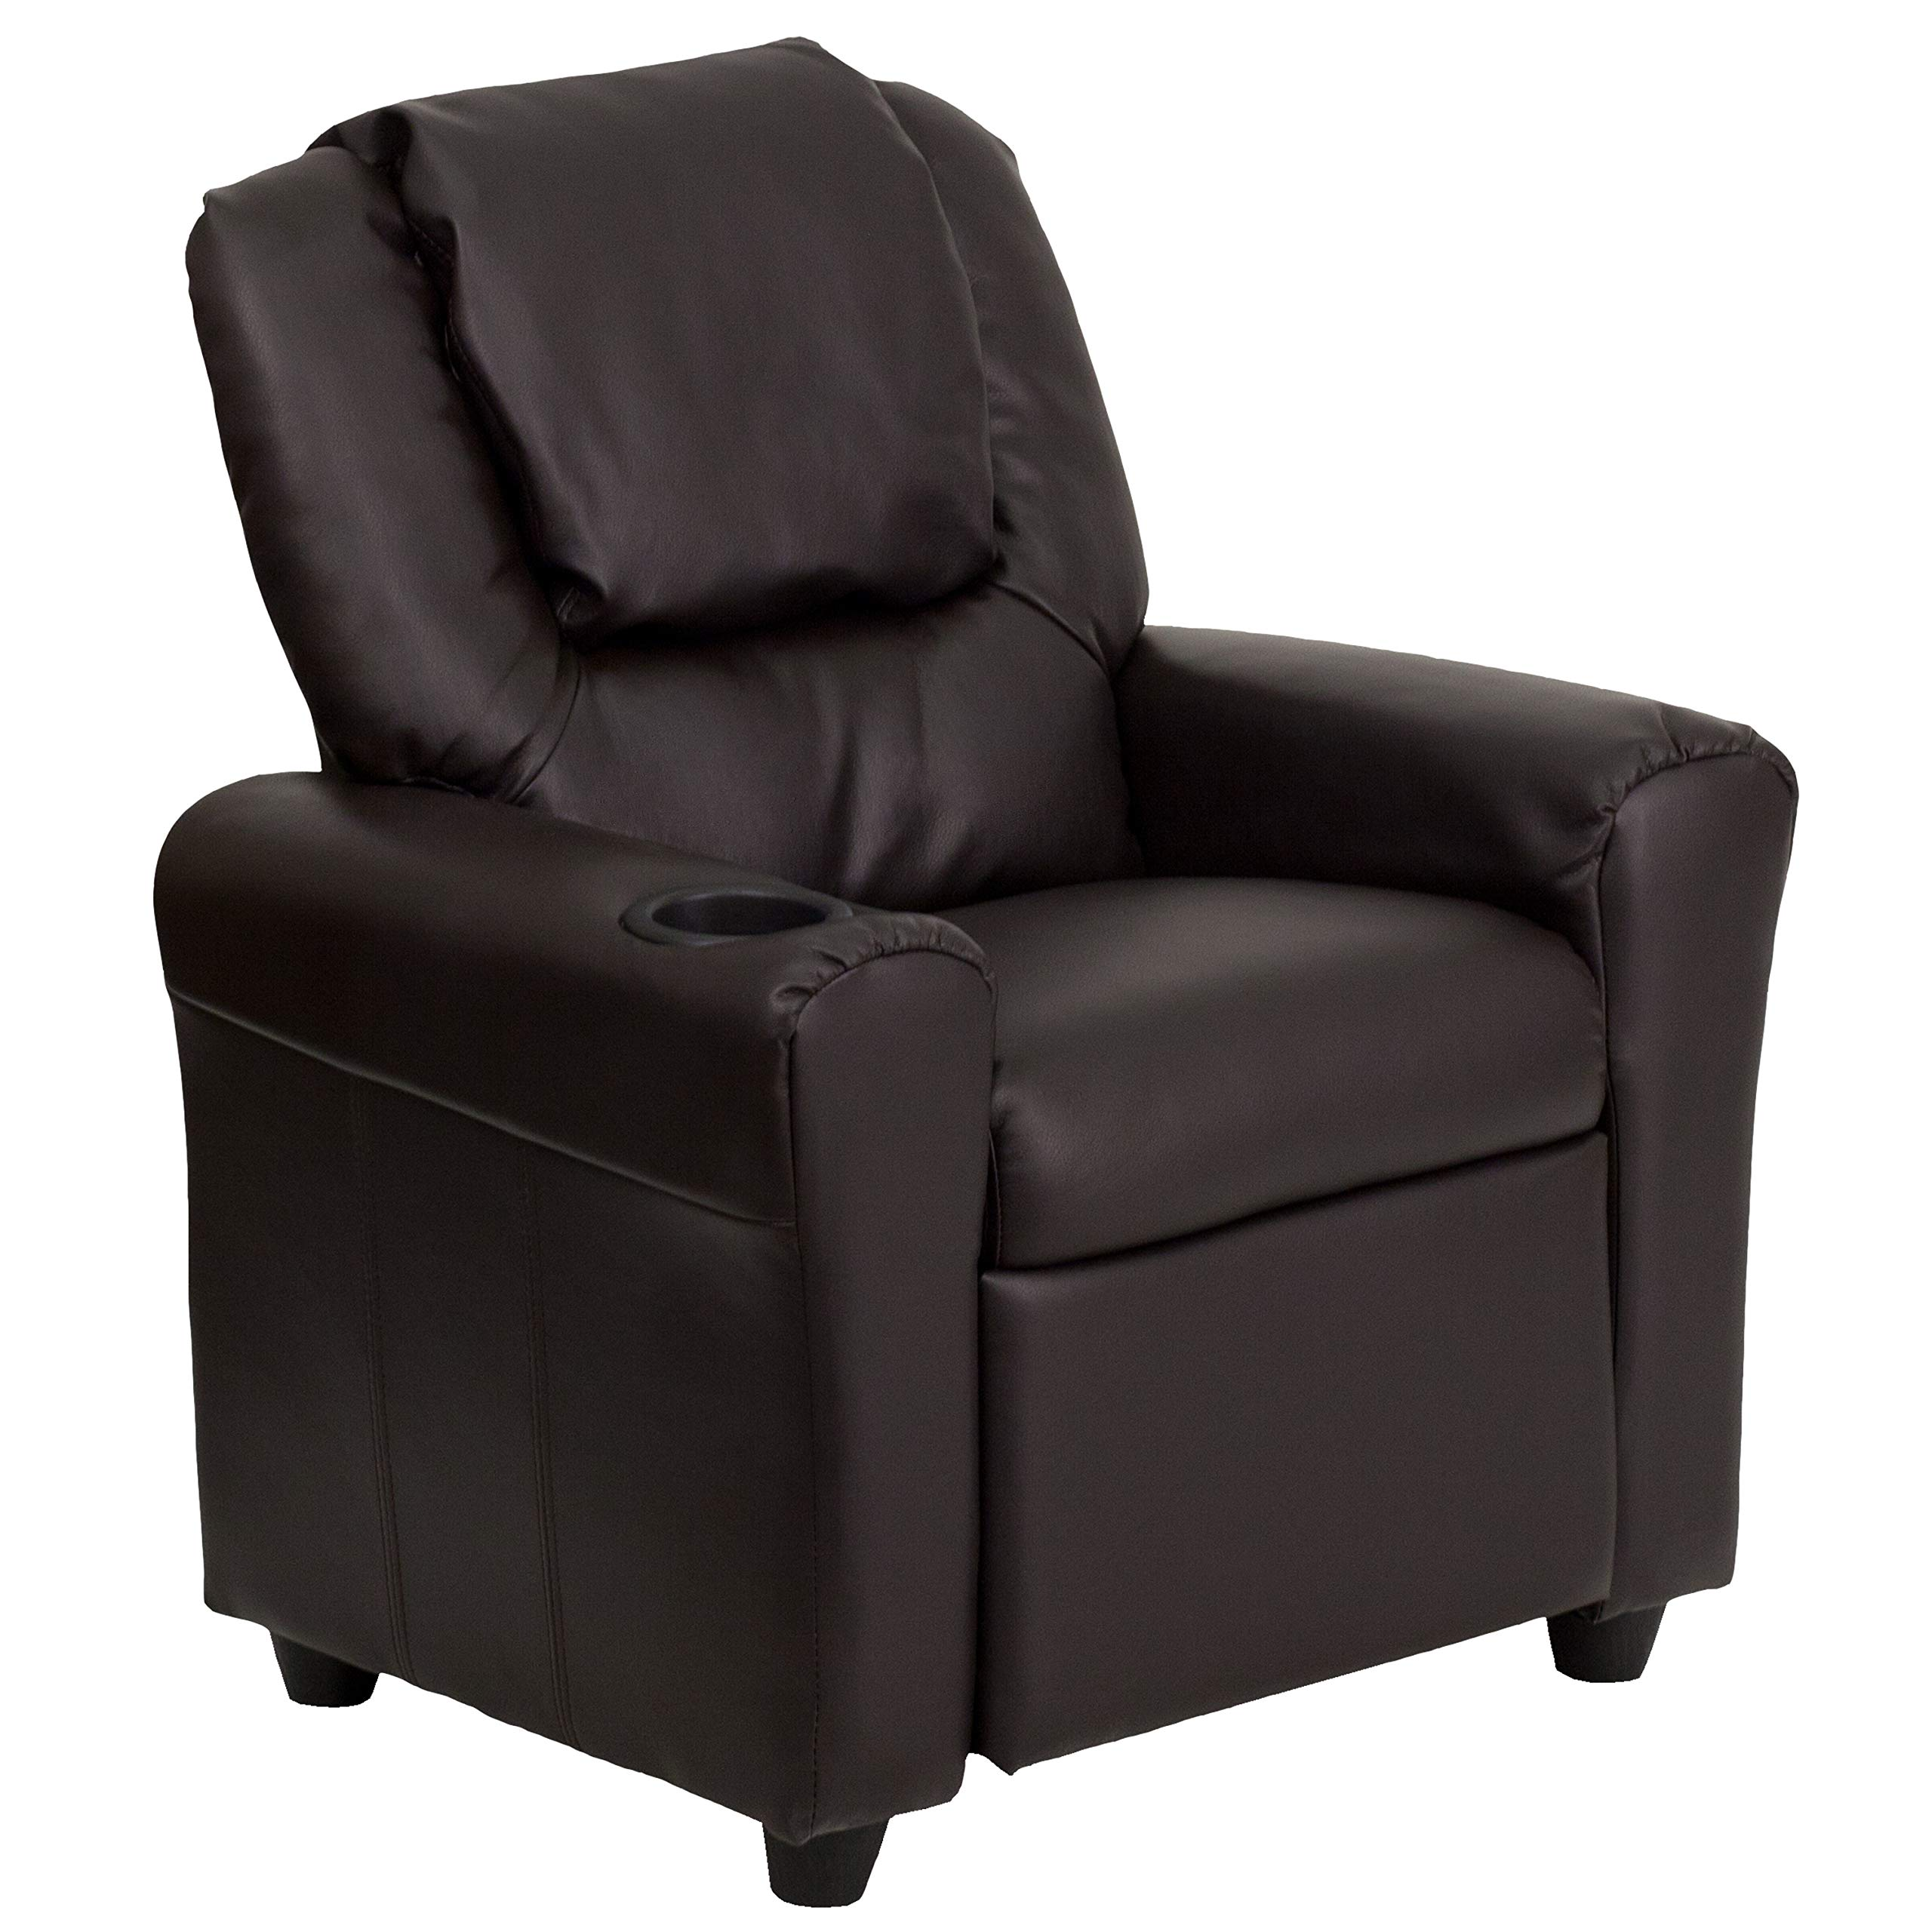 Flash Furniture Contemporary Brown Leather Kids Recliner with Cup Holder and Headrest by Flash Furniture